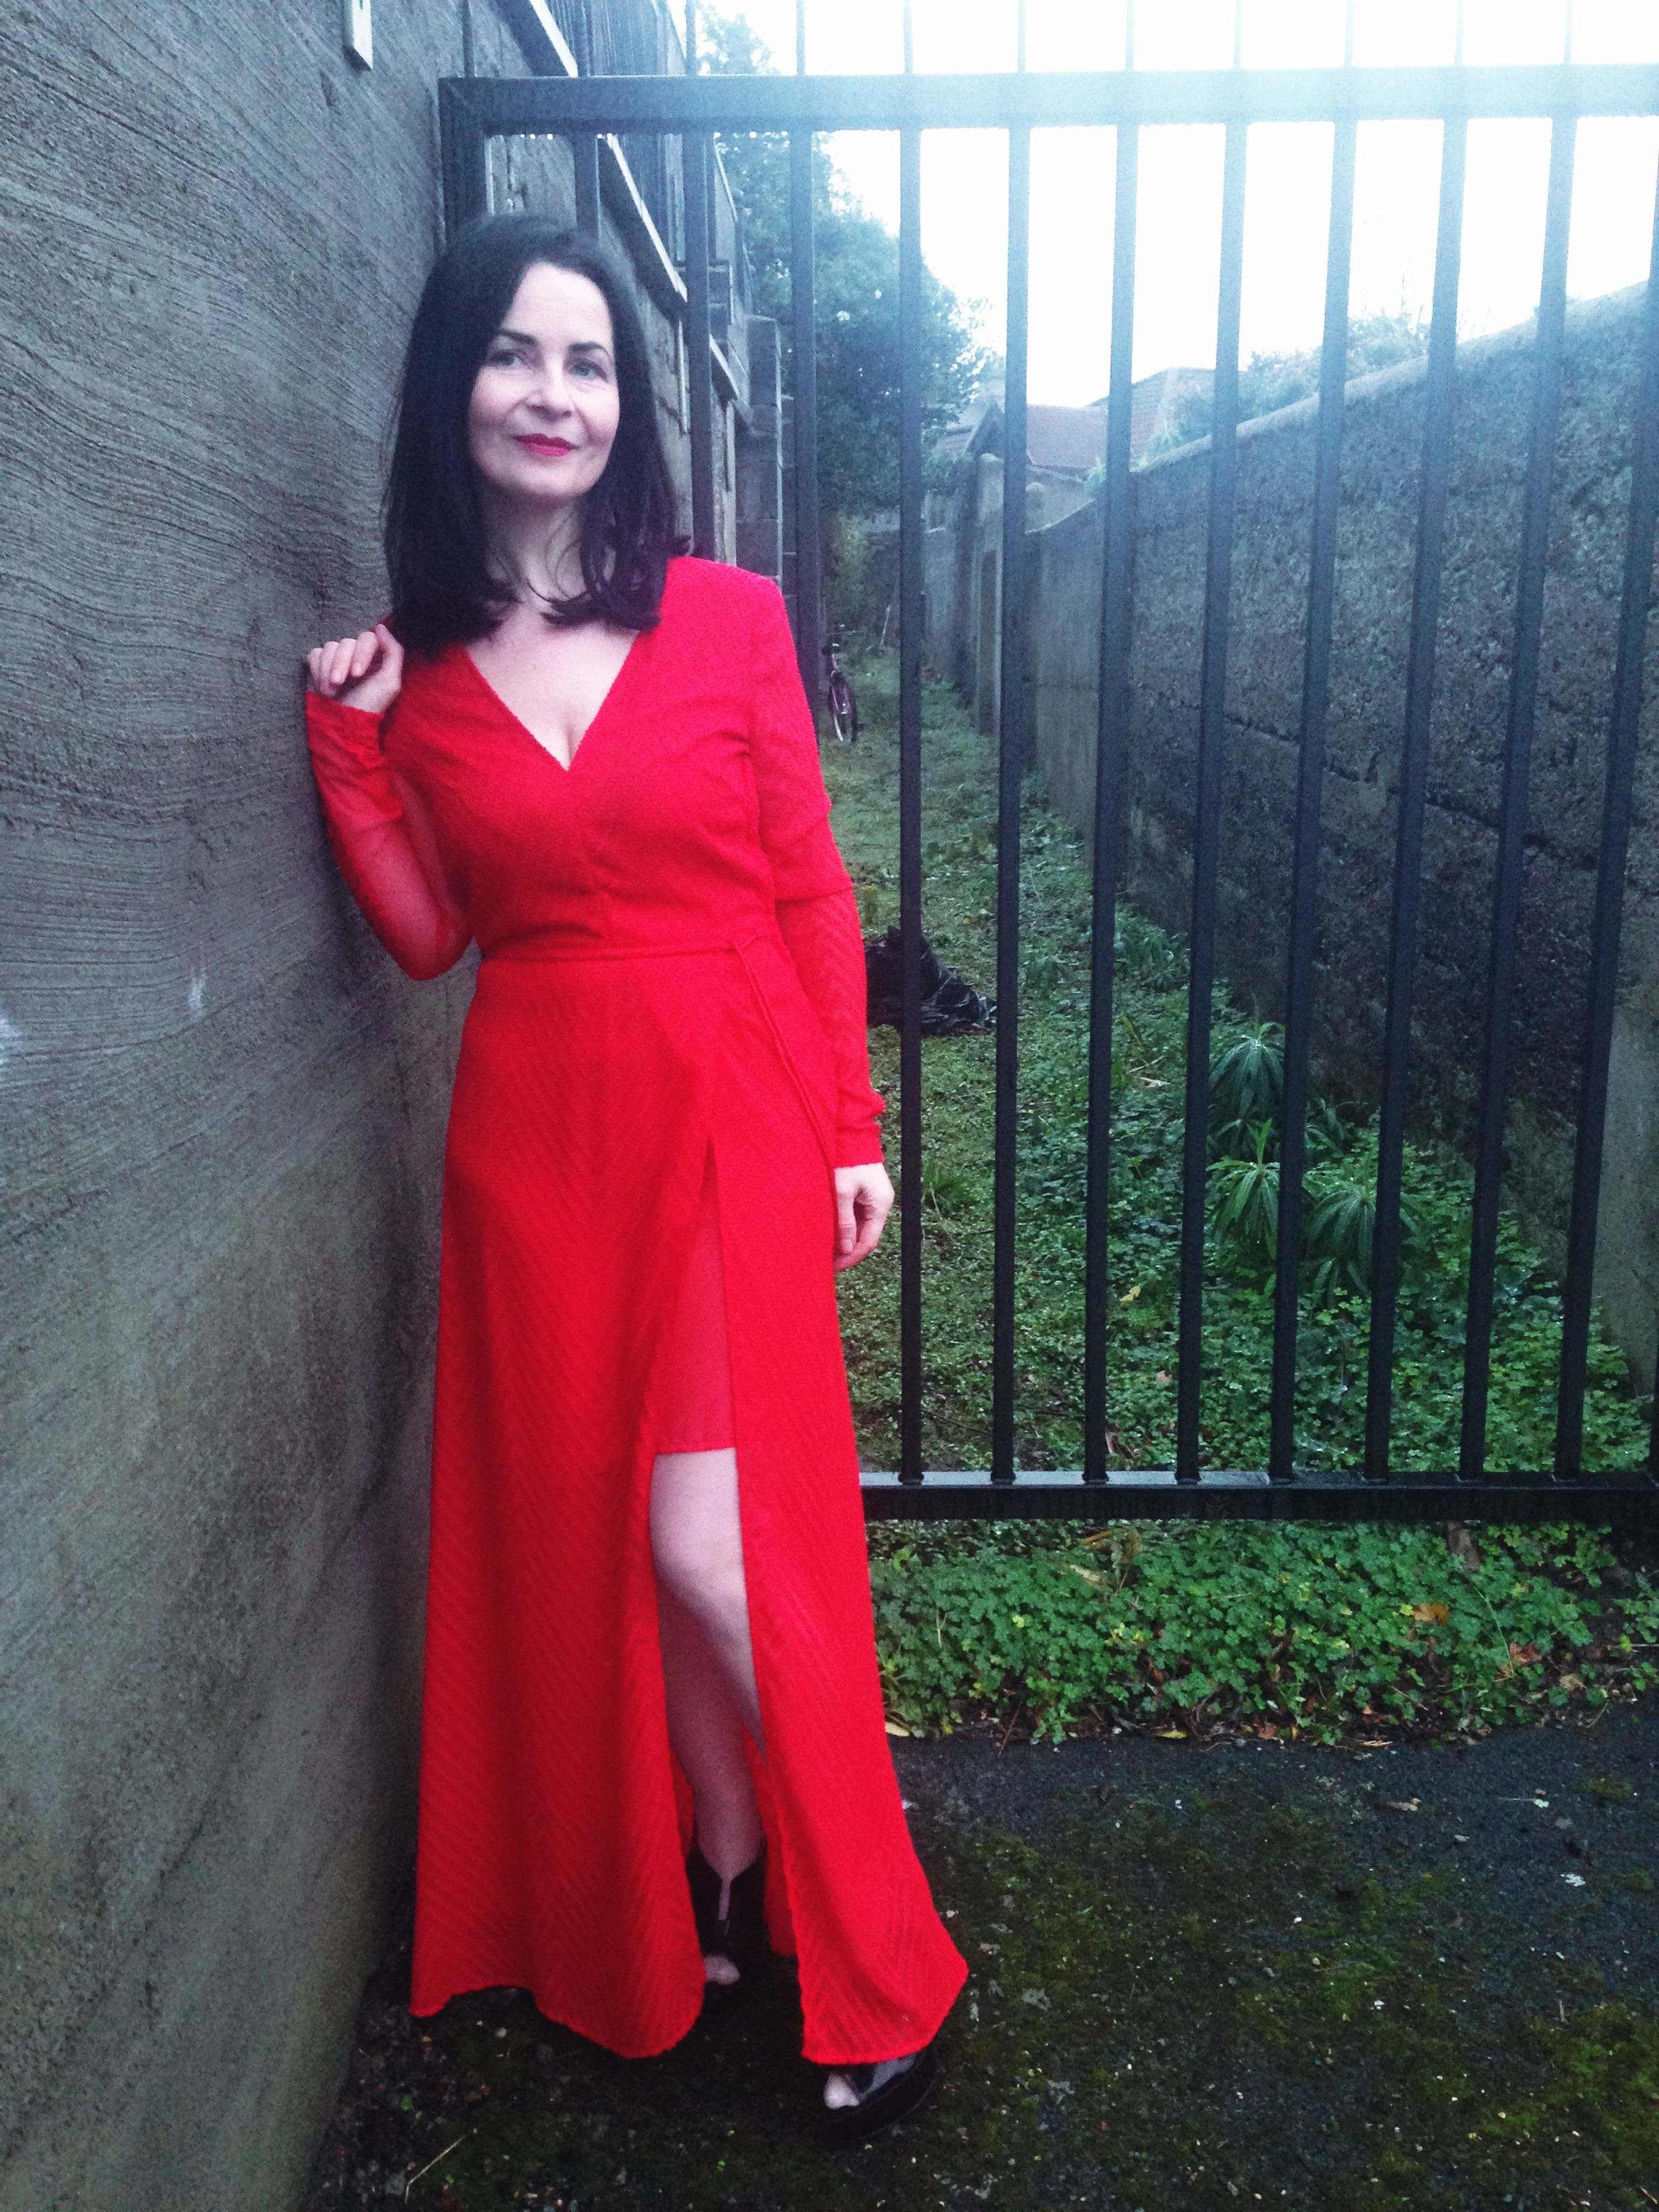 My STAR BUY for this post. Amazing retro inspired red kafton style maxi dress. H&M €19.99. AMAZING VALUE!